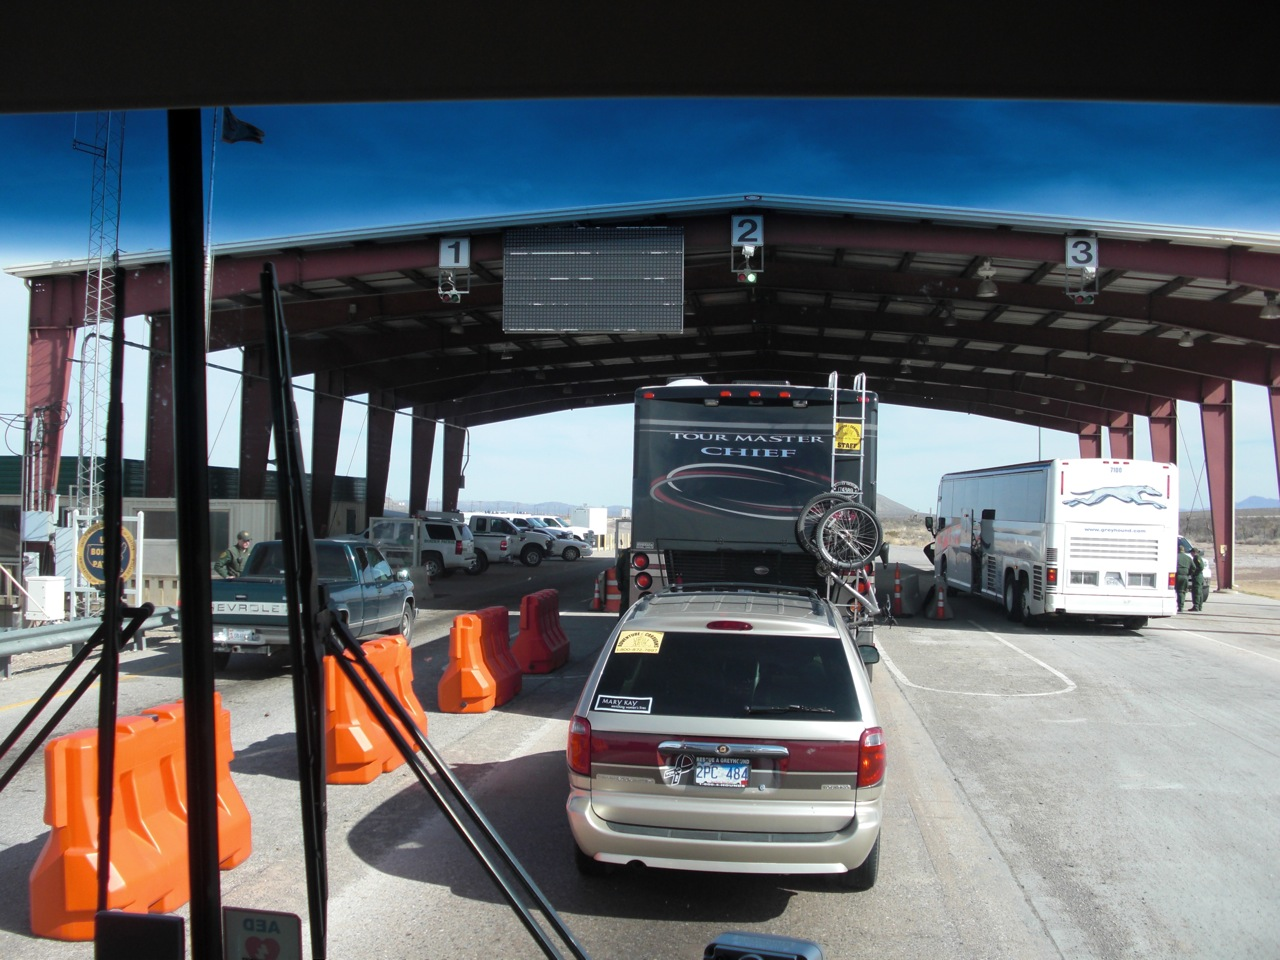 Approaching Border Patrol Inspection Station on Interstate 10 in Texas, Bob & Pat In Front Of Us